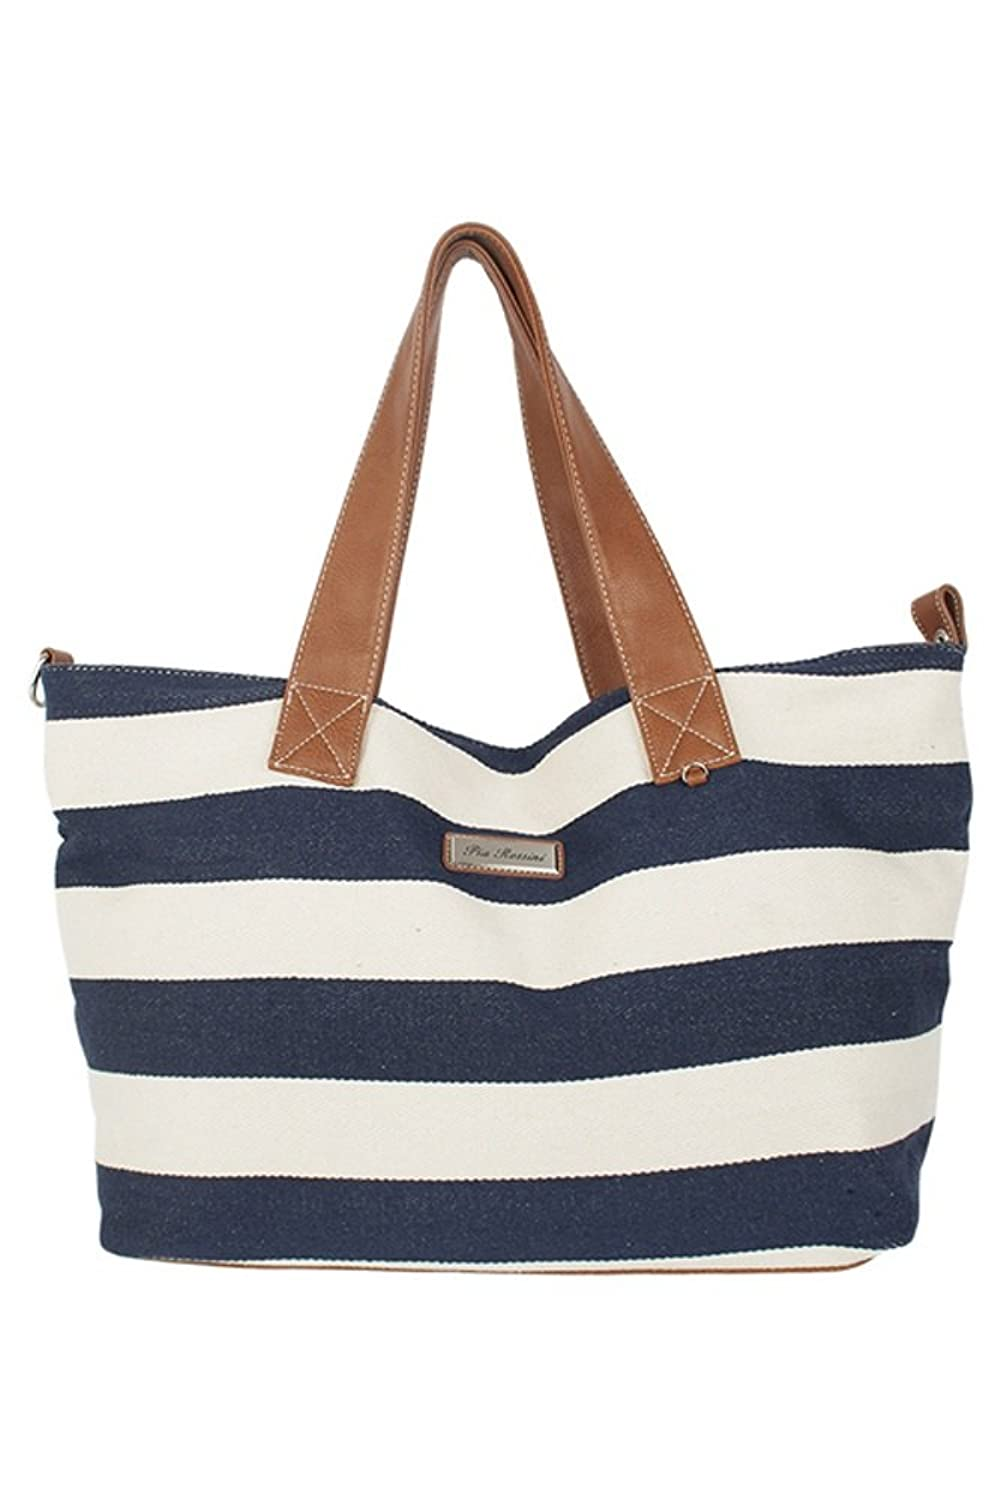 Pia Rossini Arenal Navy/White Striped Beach Bag: Amazon.co.uk ...